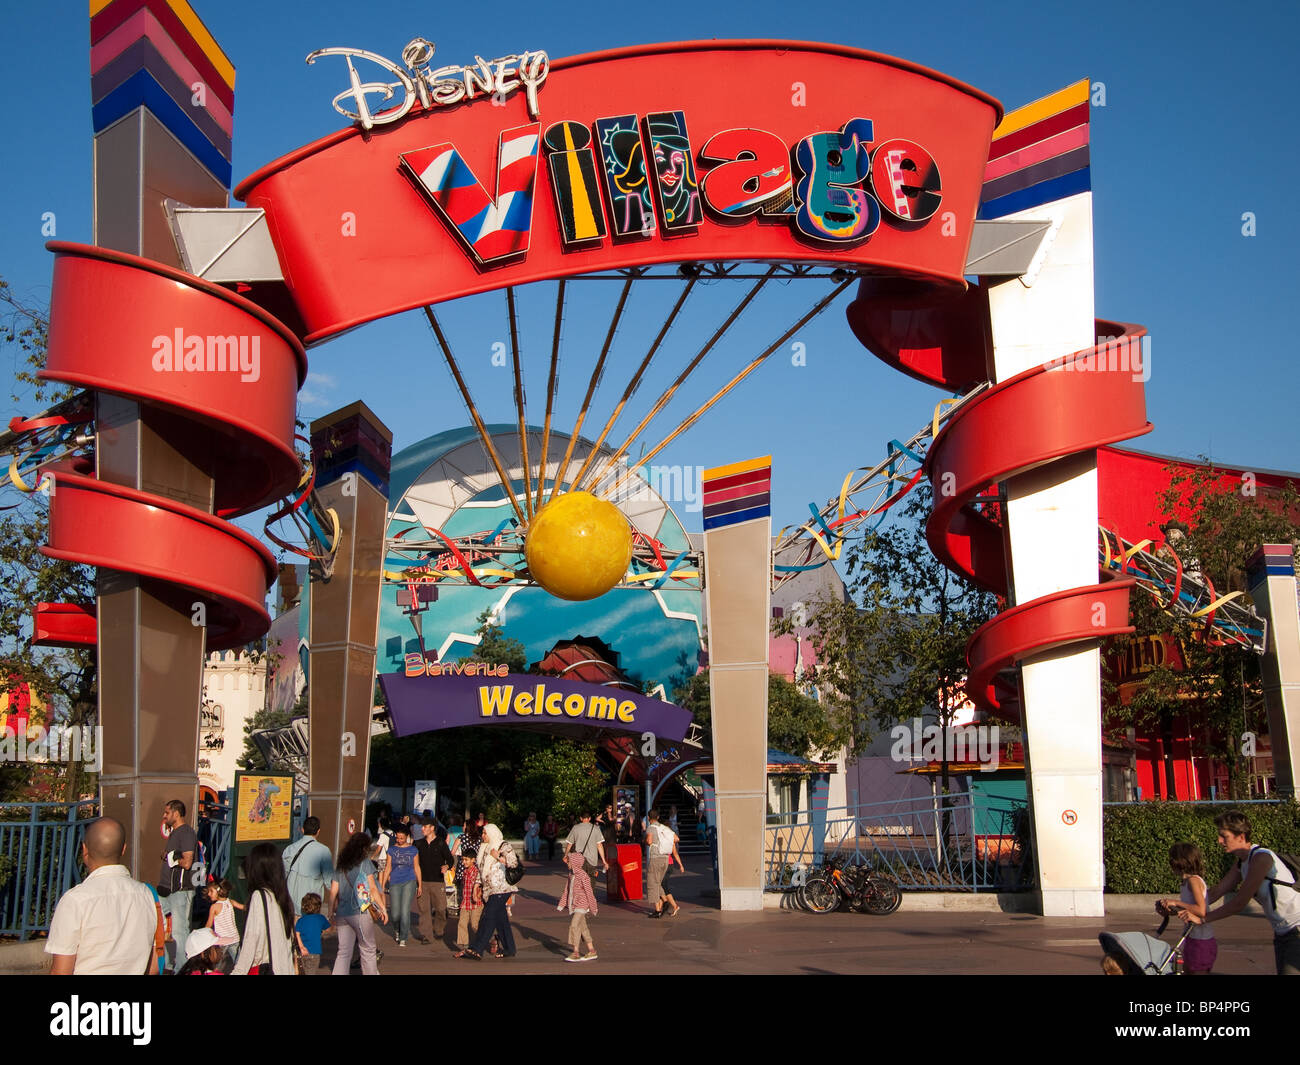 disney village disneyland paris stock photo 30838488 alamy. Black Bedroom Furniture Sets. Home Design Ideas